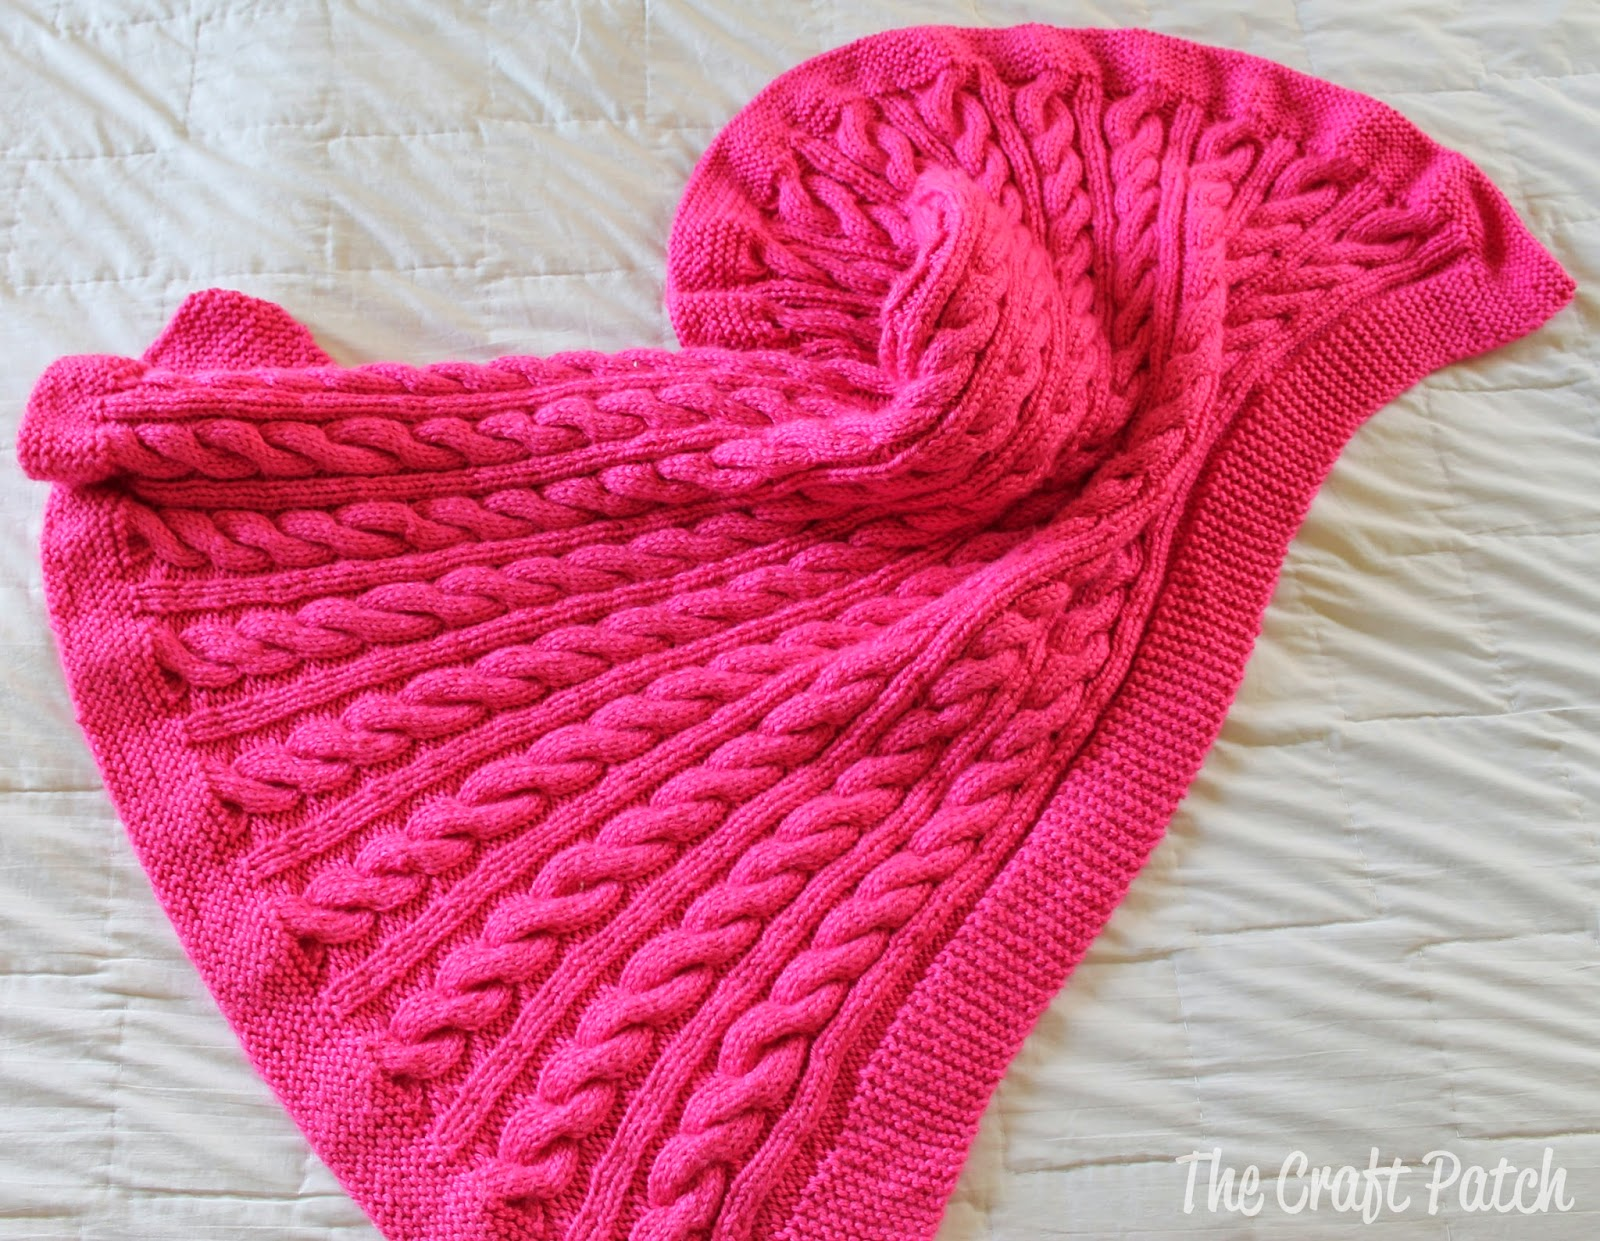 Knitting Pattern For Baby Blanket With Cable : The Craft Patch: Cable Knit Baby Blanket